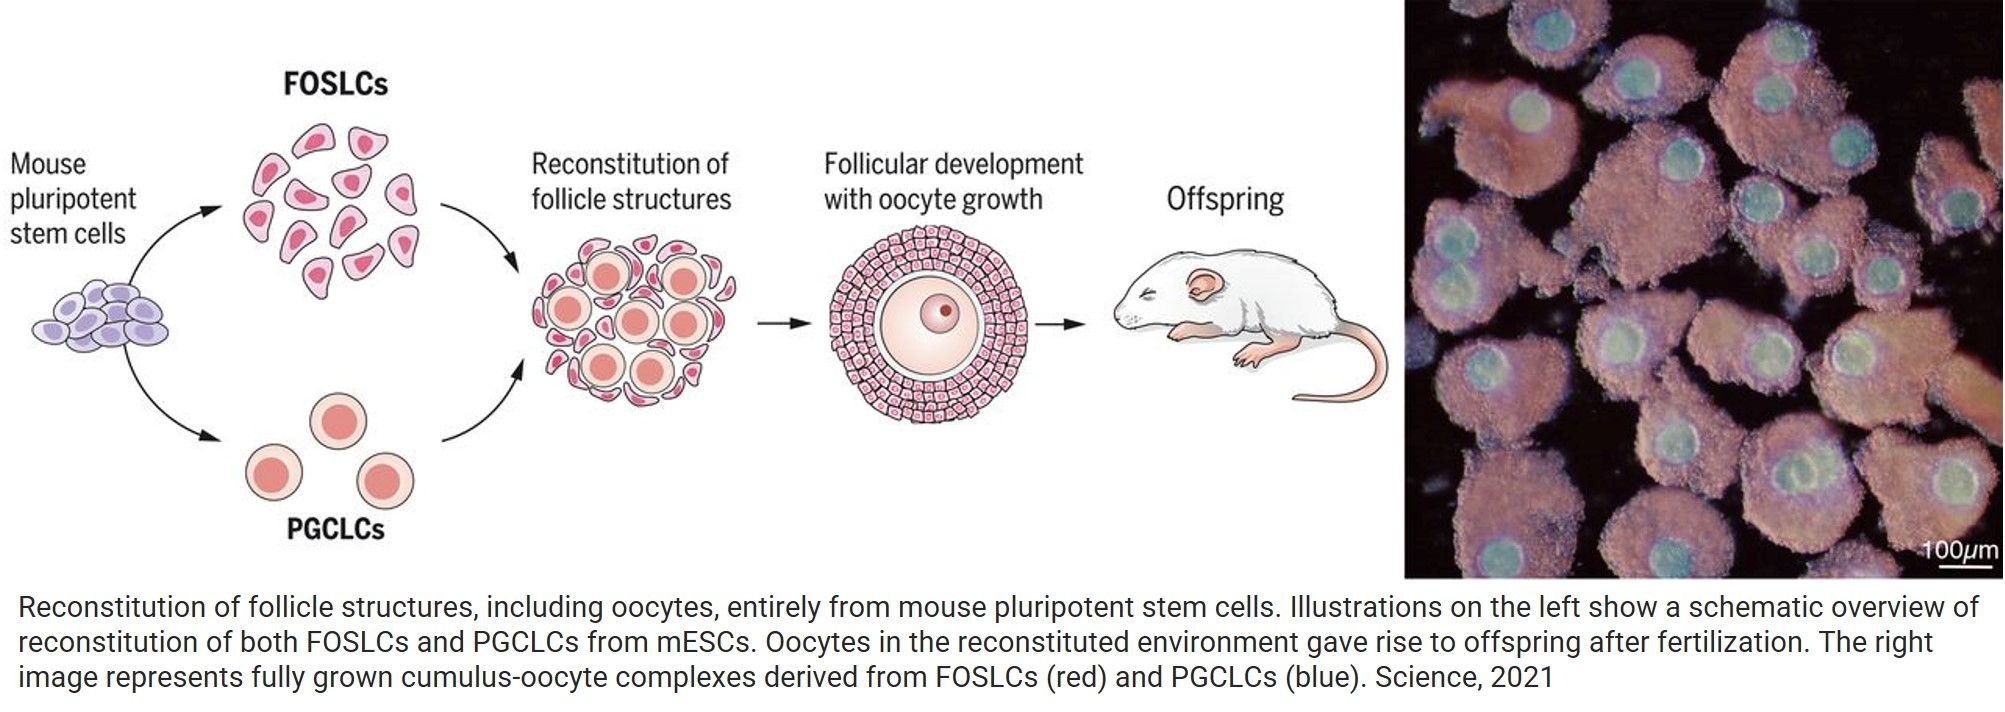 Generation of ovarian follicles from mouse pluripotent stem cells